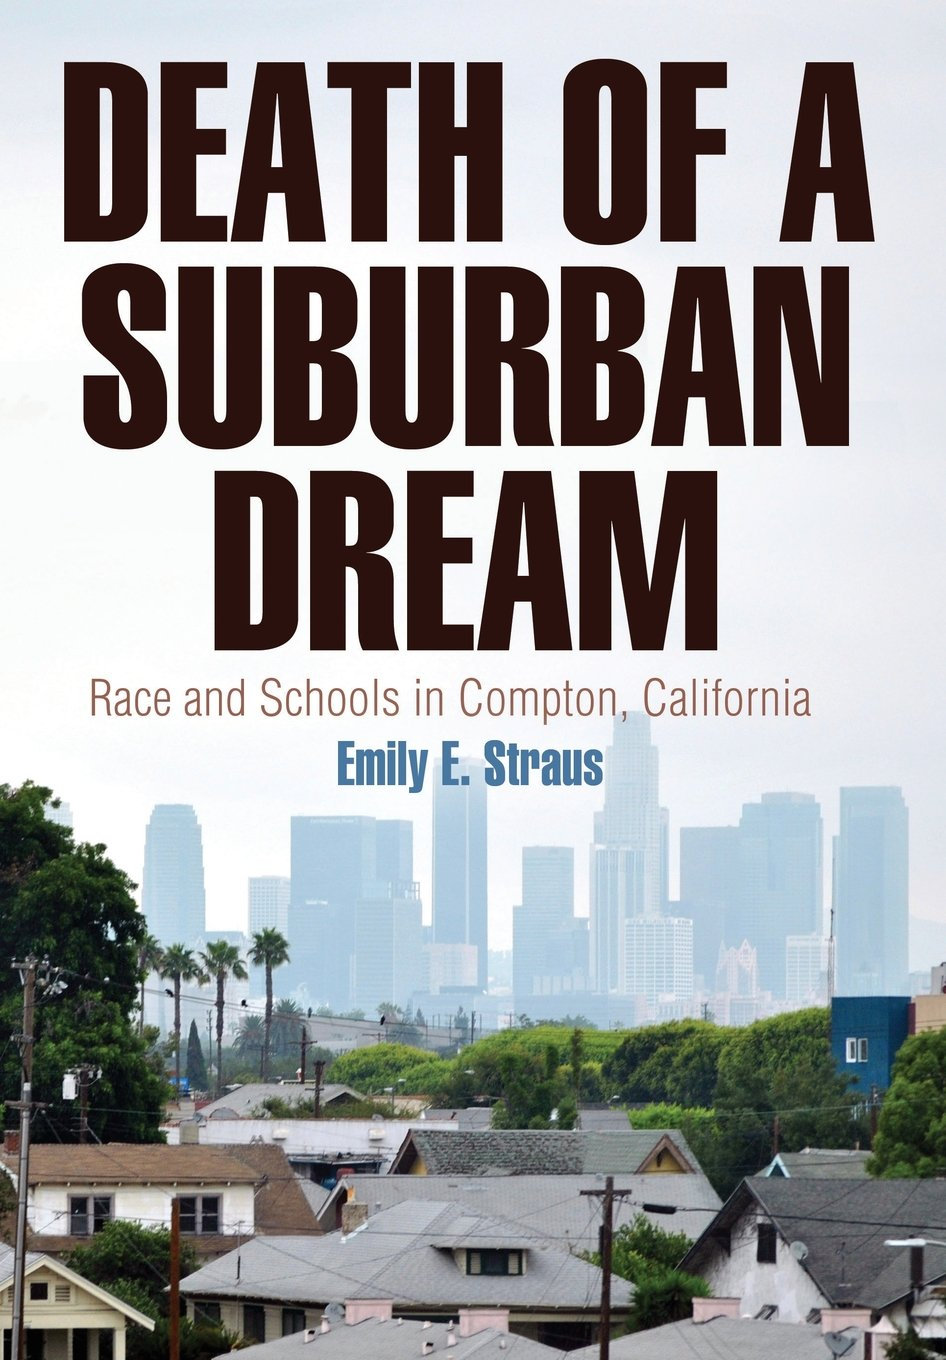 Death of a Suburban Dream: Race and Schools in Compton, California (Politics and Culture in Modern America) PDF